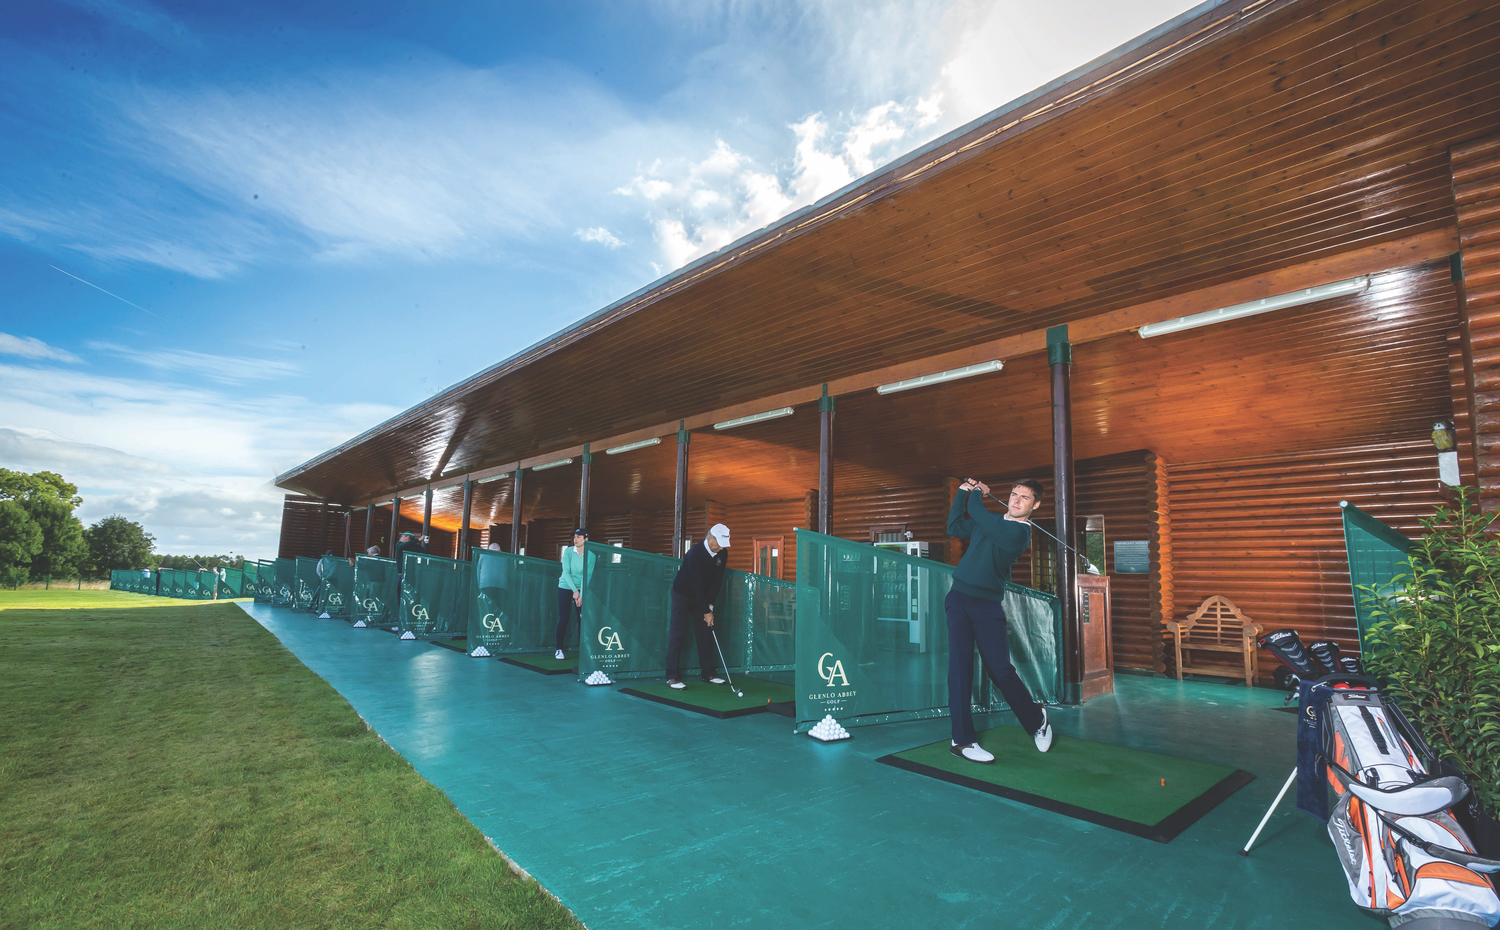 Glenlo Abbey Golf Club: a nine-hole championship golf course designed by Christy O'Connor Jnr. Golf lessons on a one-to-one basis with golf professional Gary Madden are both fun and informative and are complemented by the superior facilities of the twenty-one-bay driving range.